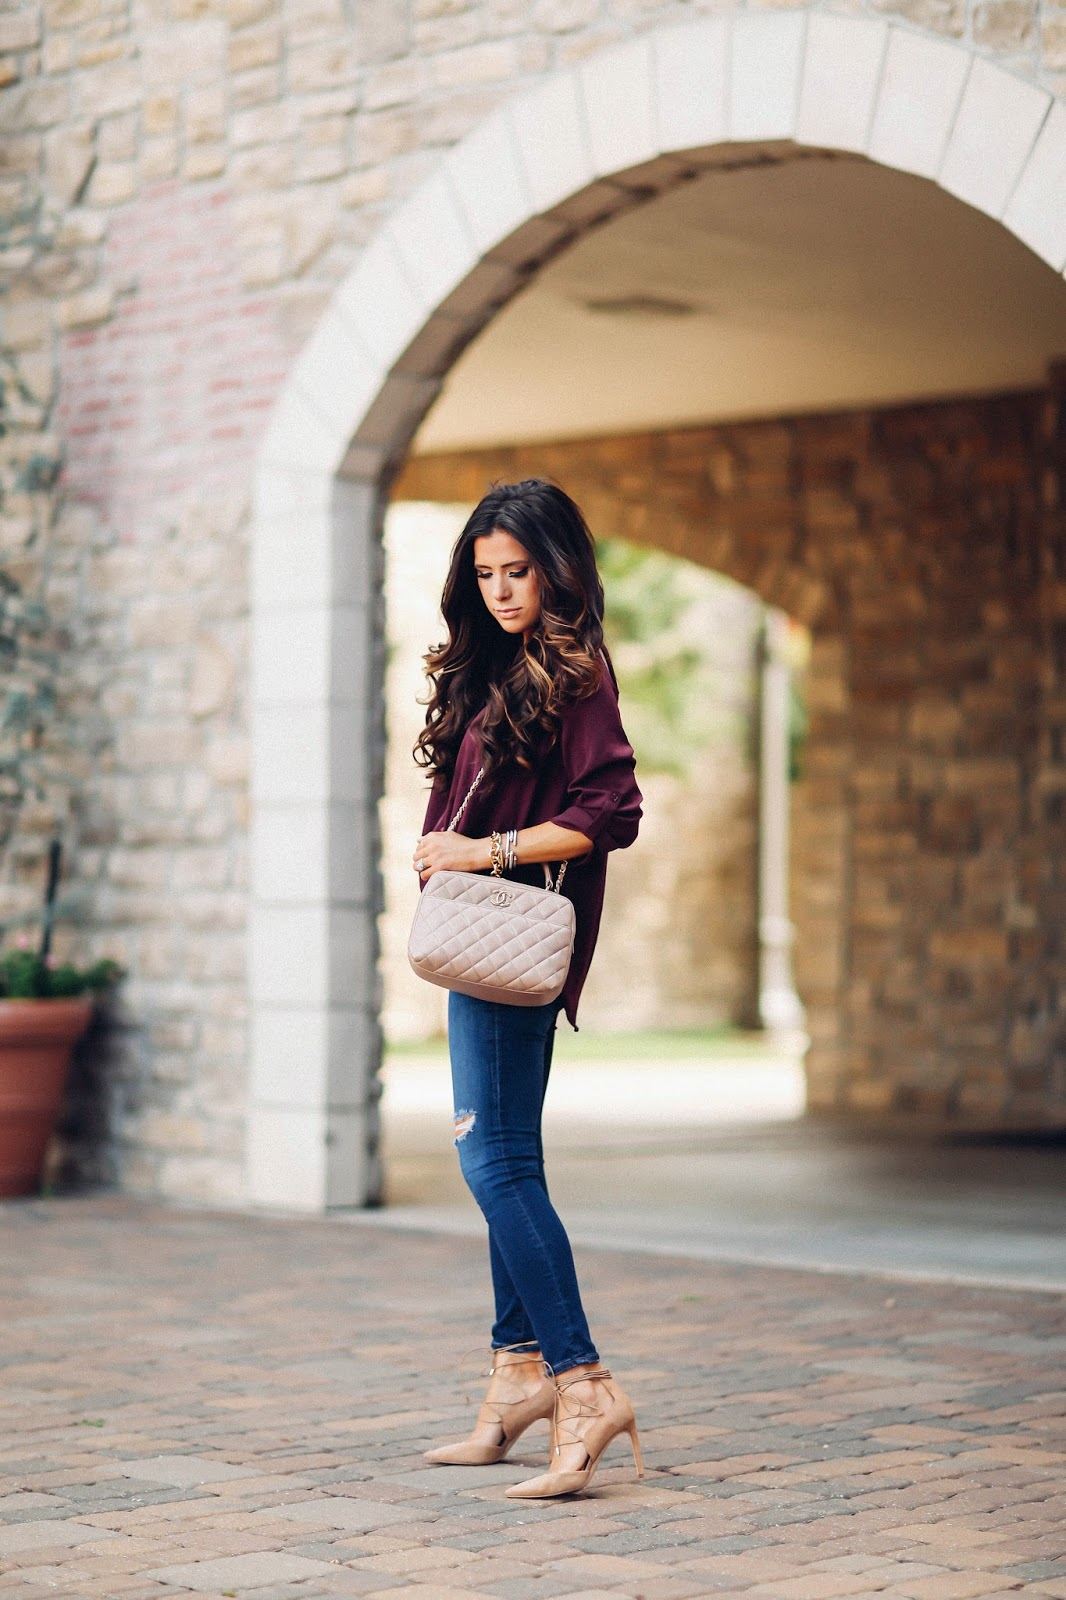 emily gemma, the sweetest thing blog, AG jeans skinny ankle review, Lush top nordstrom, pinterest fall outfit idea, pinterest fall fashion, pinterest outfit ideas for fall, pinterest date night outfits, chanel bowling bag in beige, H audrey gold necklace by clrrrk, bauble bar monogram, sam edelman lace up heels, tulsa fashion blog, gold michele serein watch, dallas fashion blog, cute jeans and heels outfits, brunette balayage, balayage for fall, medium hair styles balayage with curls, david yurman bracelet stack